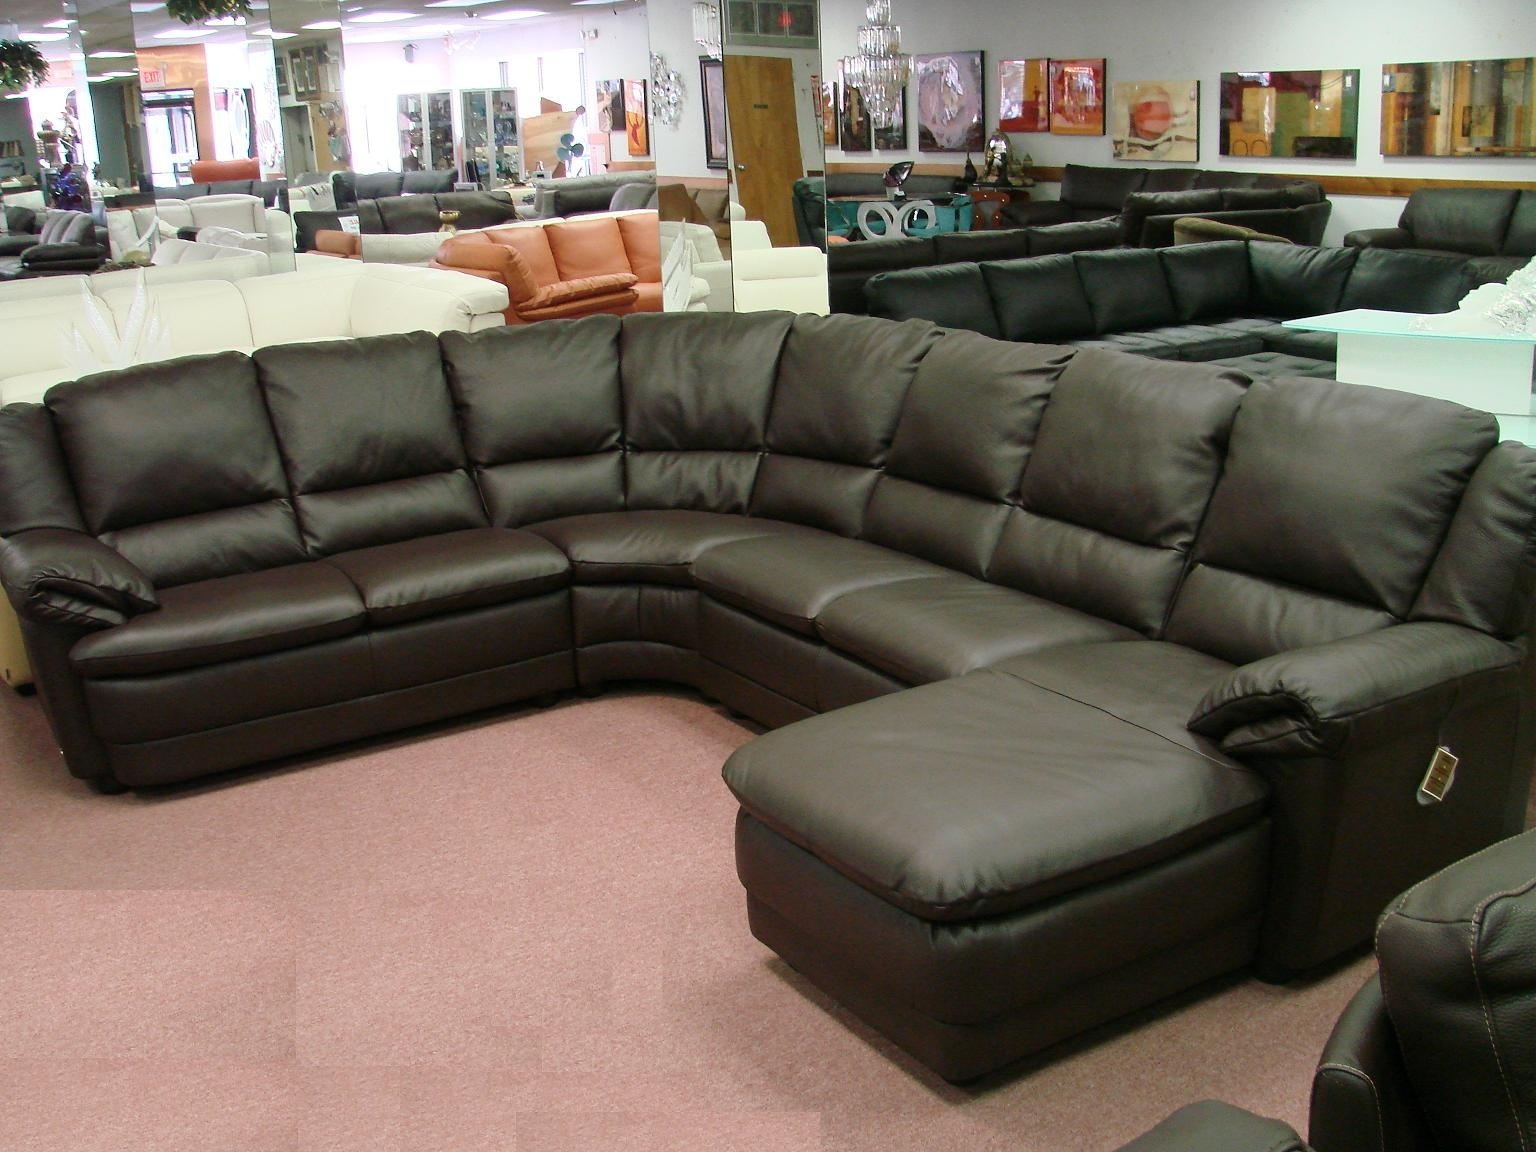 Sectional Sofa Design: High End Leather Sectional Sofas For Sale throughout On Sale Sectional Sofas (Image 7 of 10)